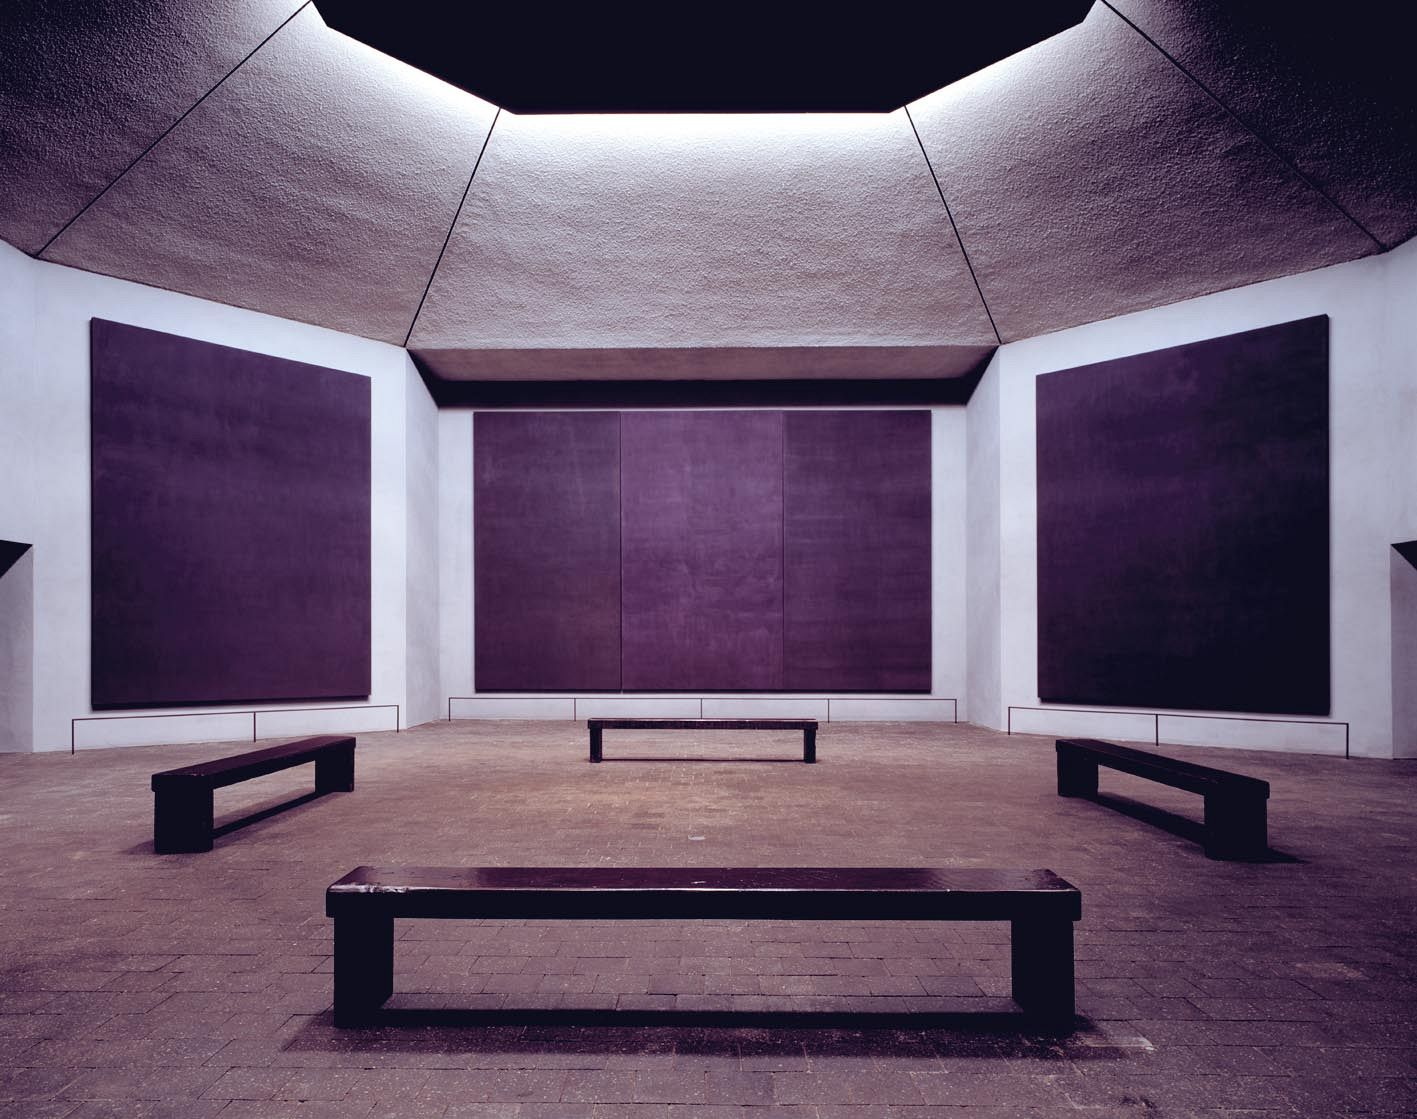 The Rothko chapel, Houston, Texas. Interior with paintings by Mark Rothko. Architects: Rothko collaborated with Philip Johnson on the plans. Howard Barnstone and Eugene Aubry completed the building in 1971. Photo: Hickey-Robertson. The Rothko Chapel, Houston